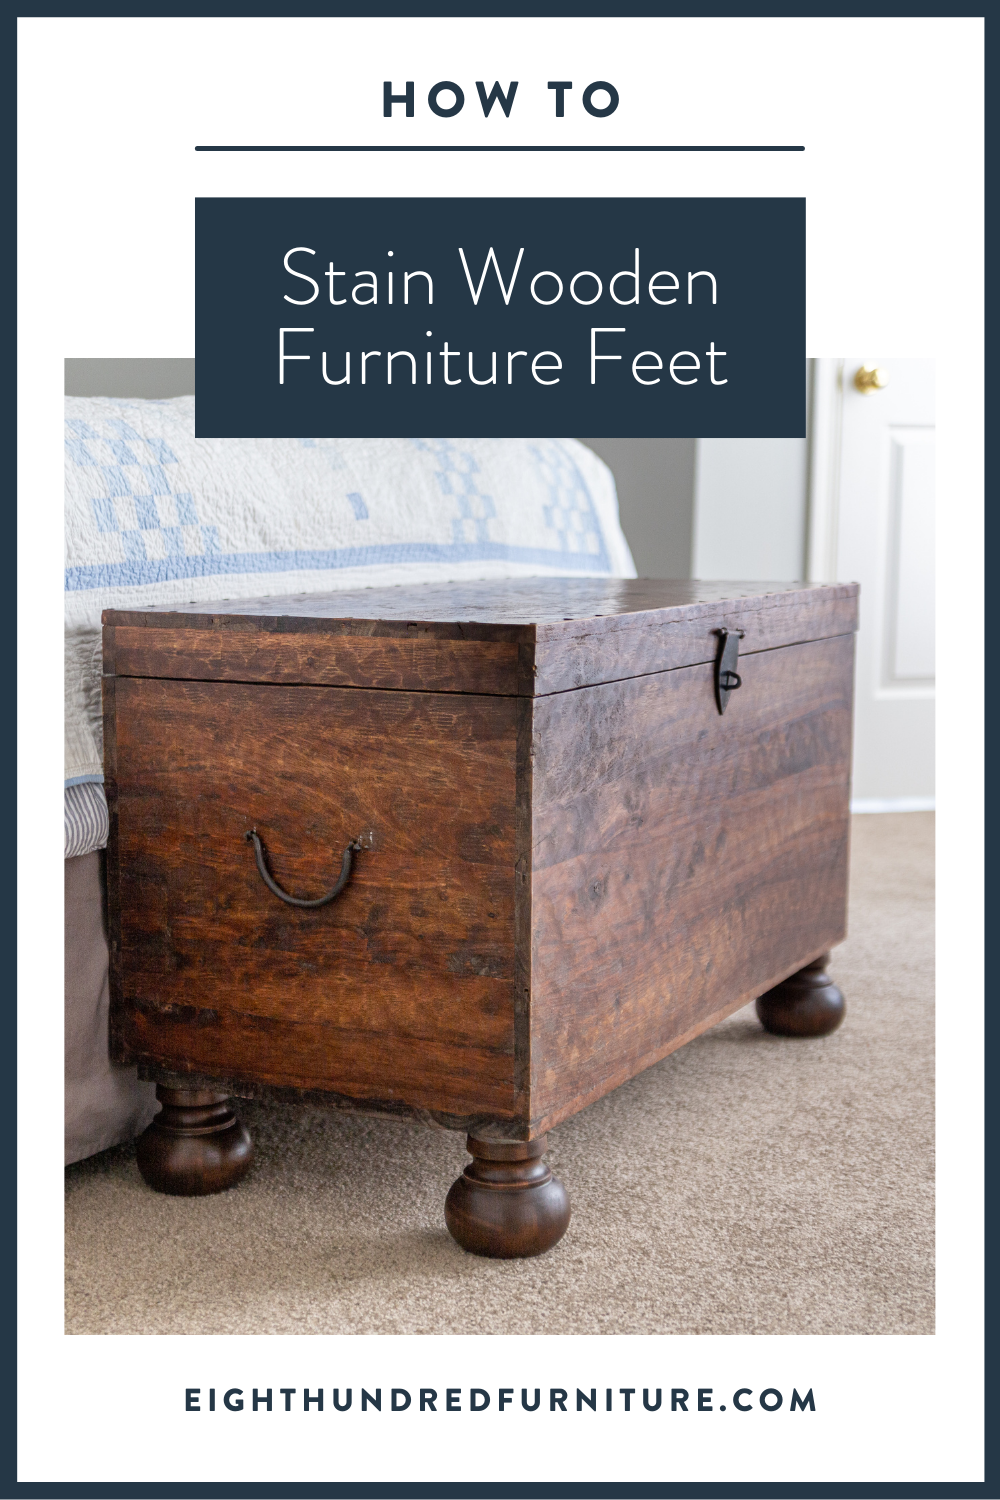 How to stain wooden furniture feet by Eight Hundred Furniture